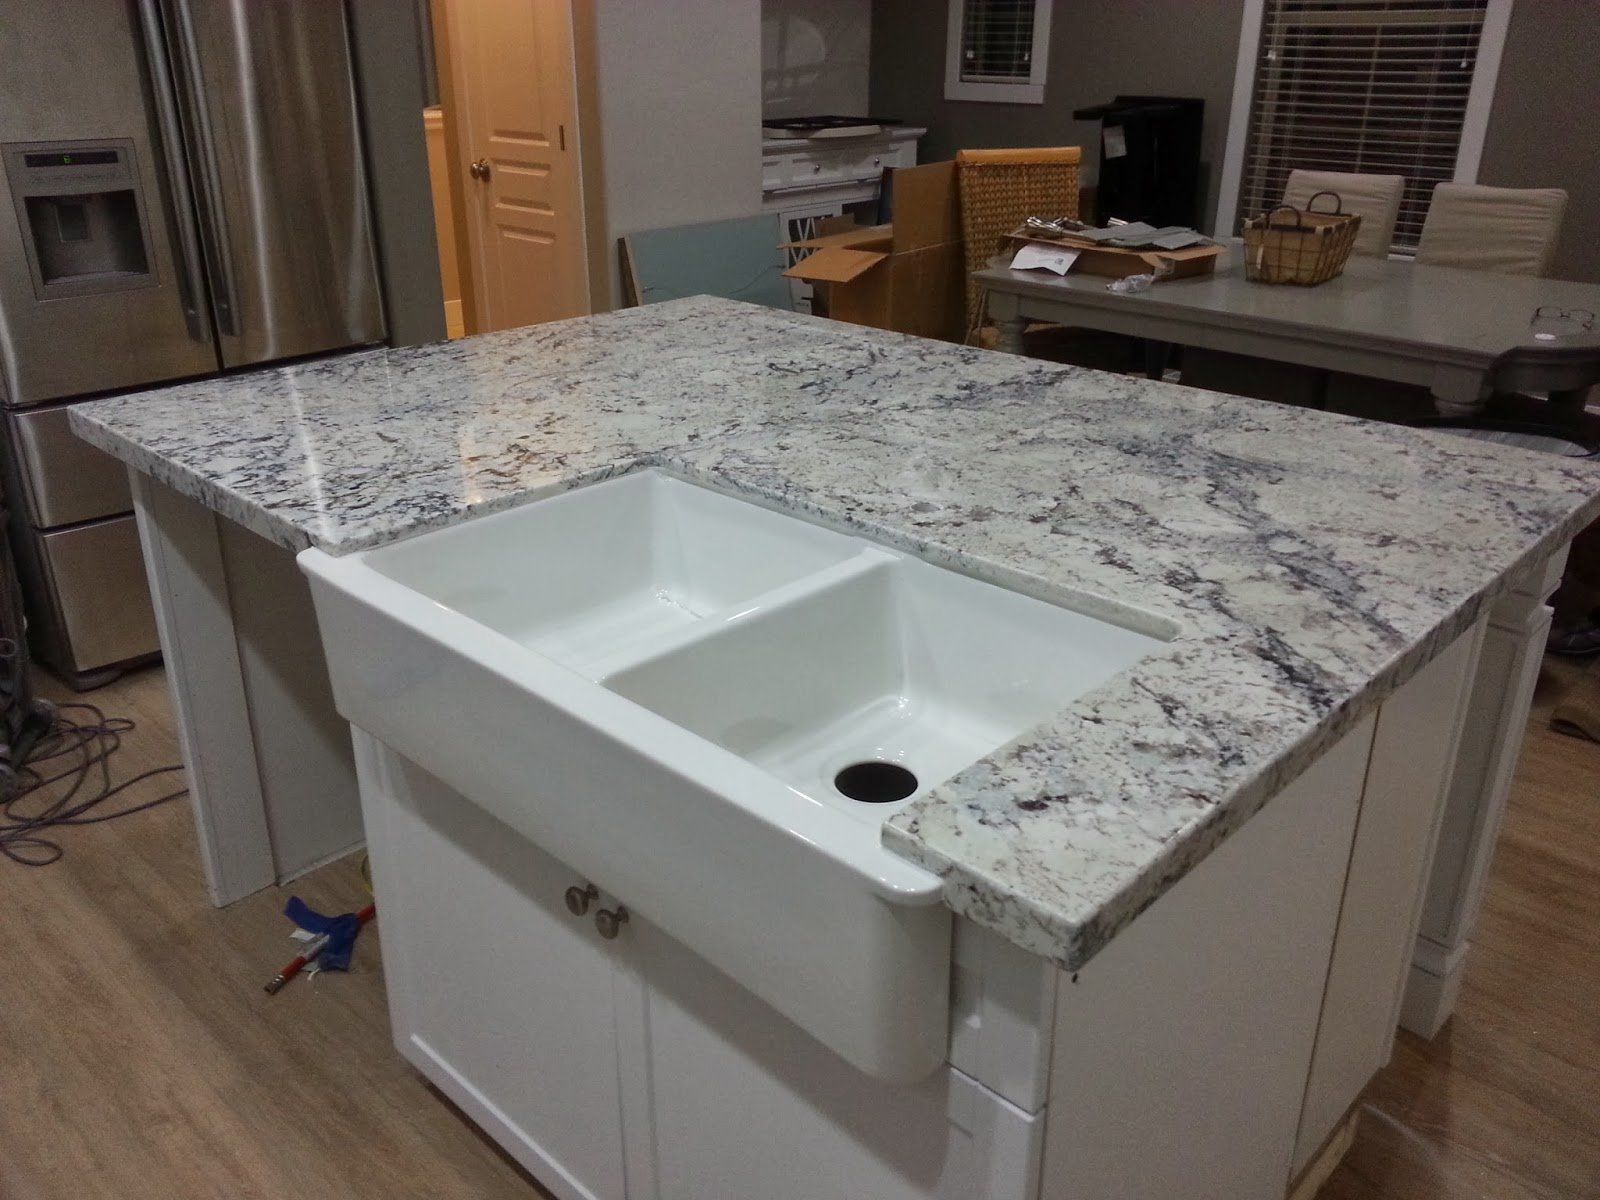 Beautiful Granite Countertops Pros And Cons Adorable Grey With Pencil Edges And  Countertop Tiles Labels S Interior White Double Sink Over Wooden Kitchen  Island On ...